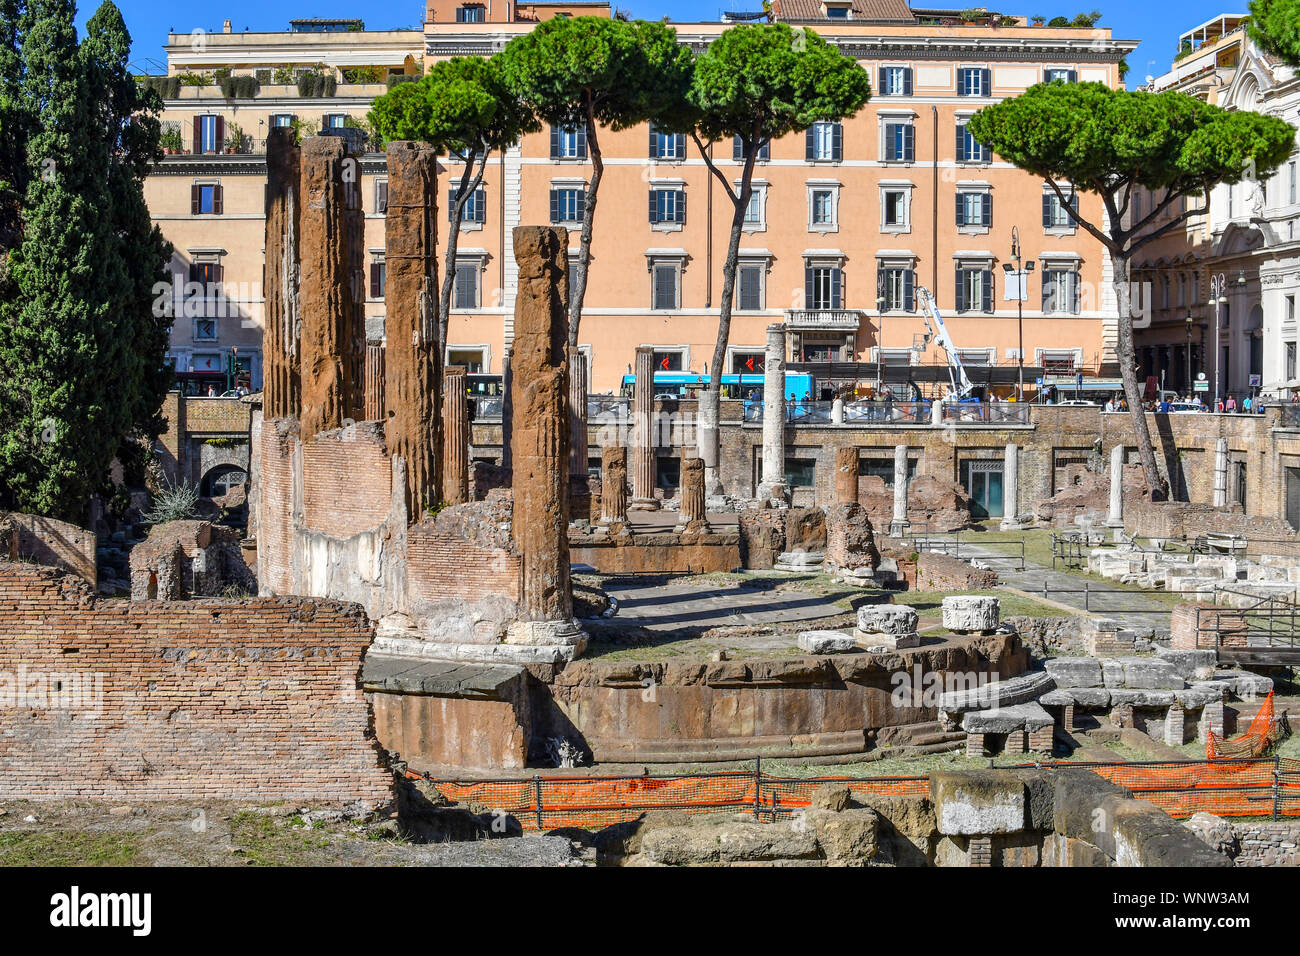 The excavated underground ruins at Largo di Torre Argentina containing Roman temples and the remains of Pompey's Theatre, now a cat sanctuary. Stock Photo